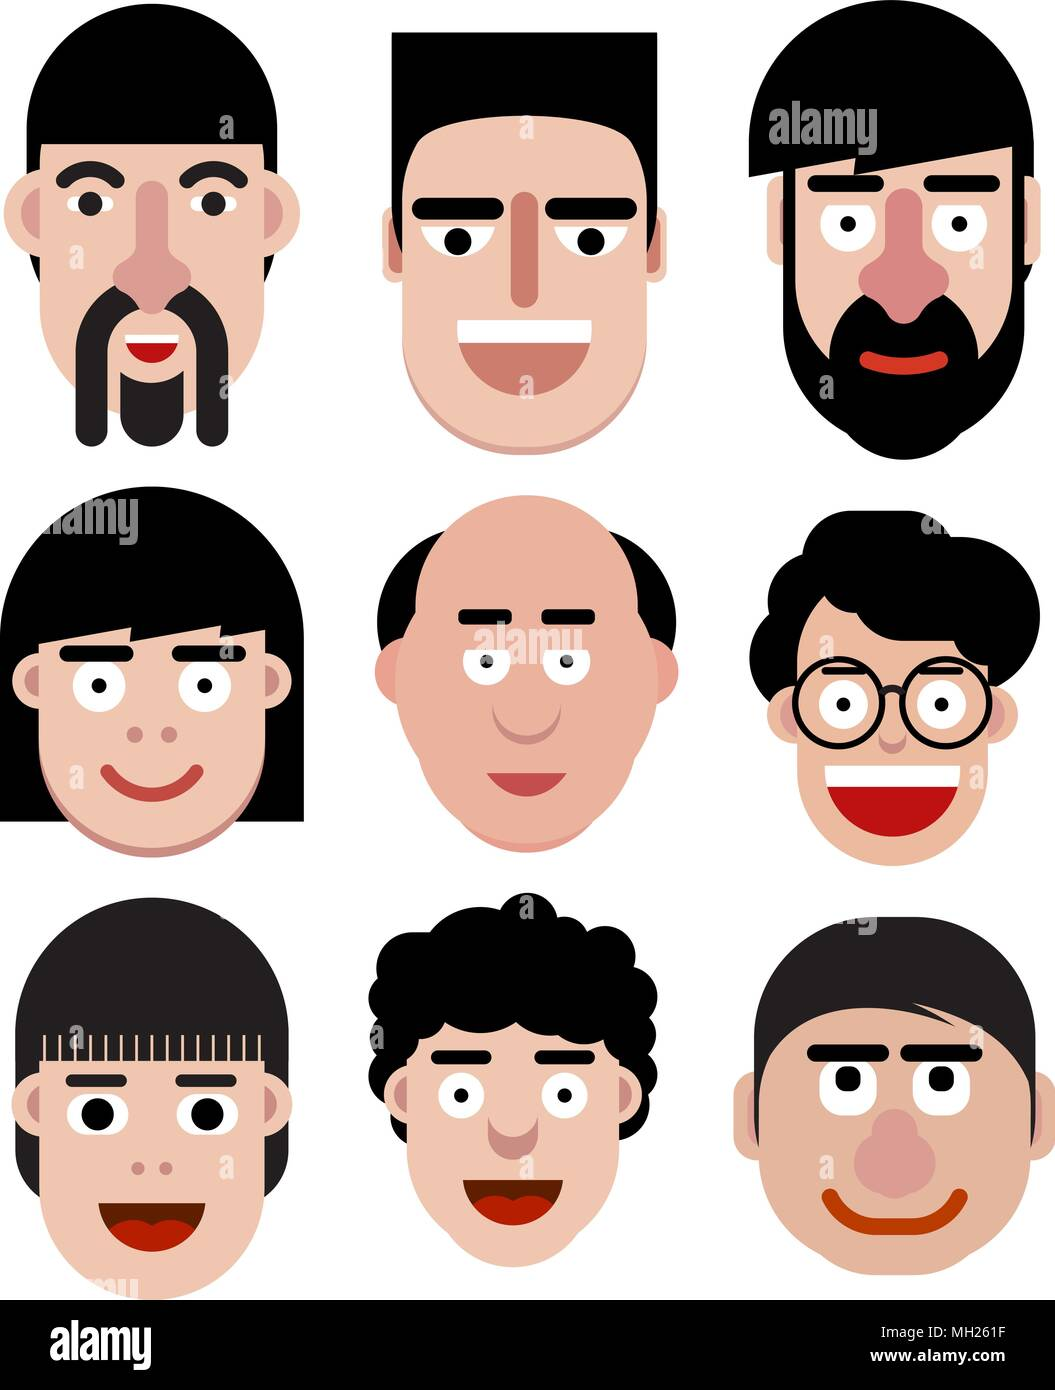 Outstanding Set Of Cartoon Vector Men Faces In Very Simple Style Stock Vector Natural Hairstyles Runnerswayorg